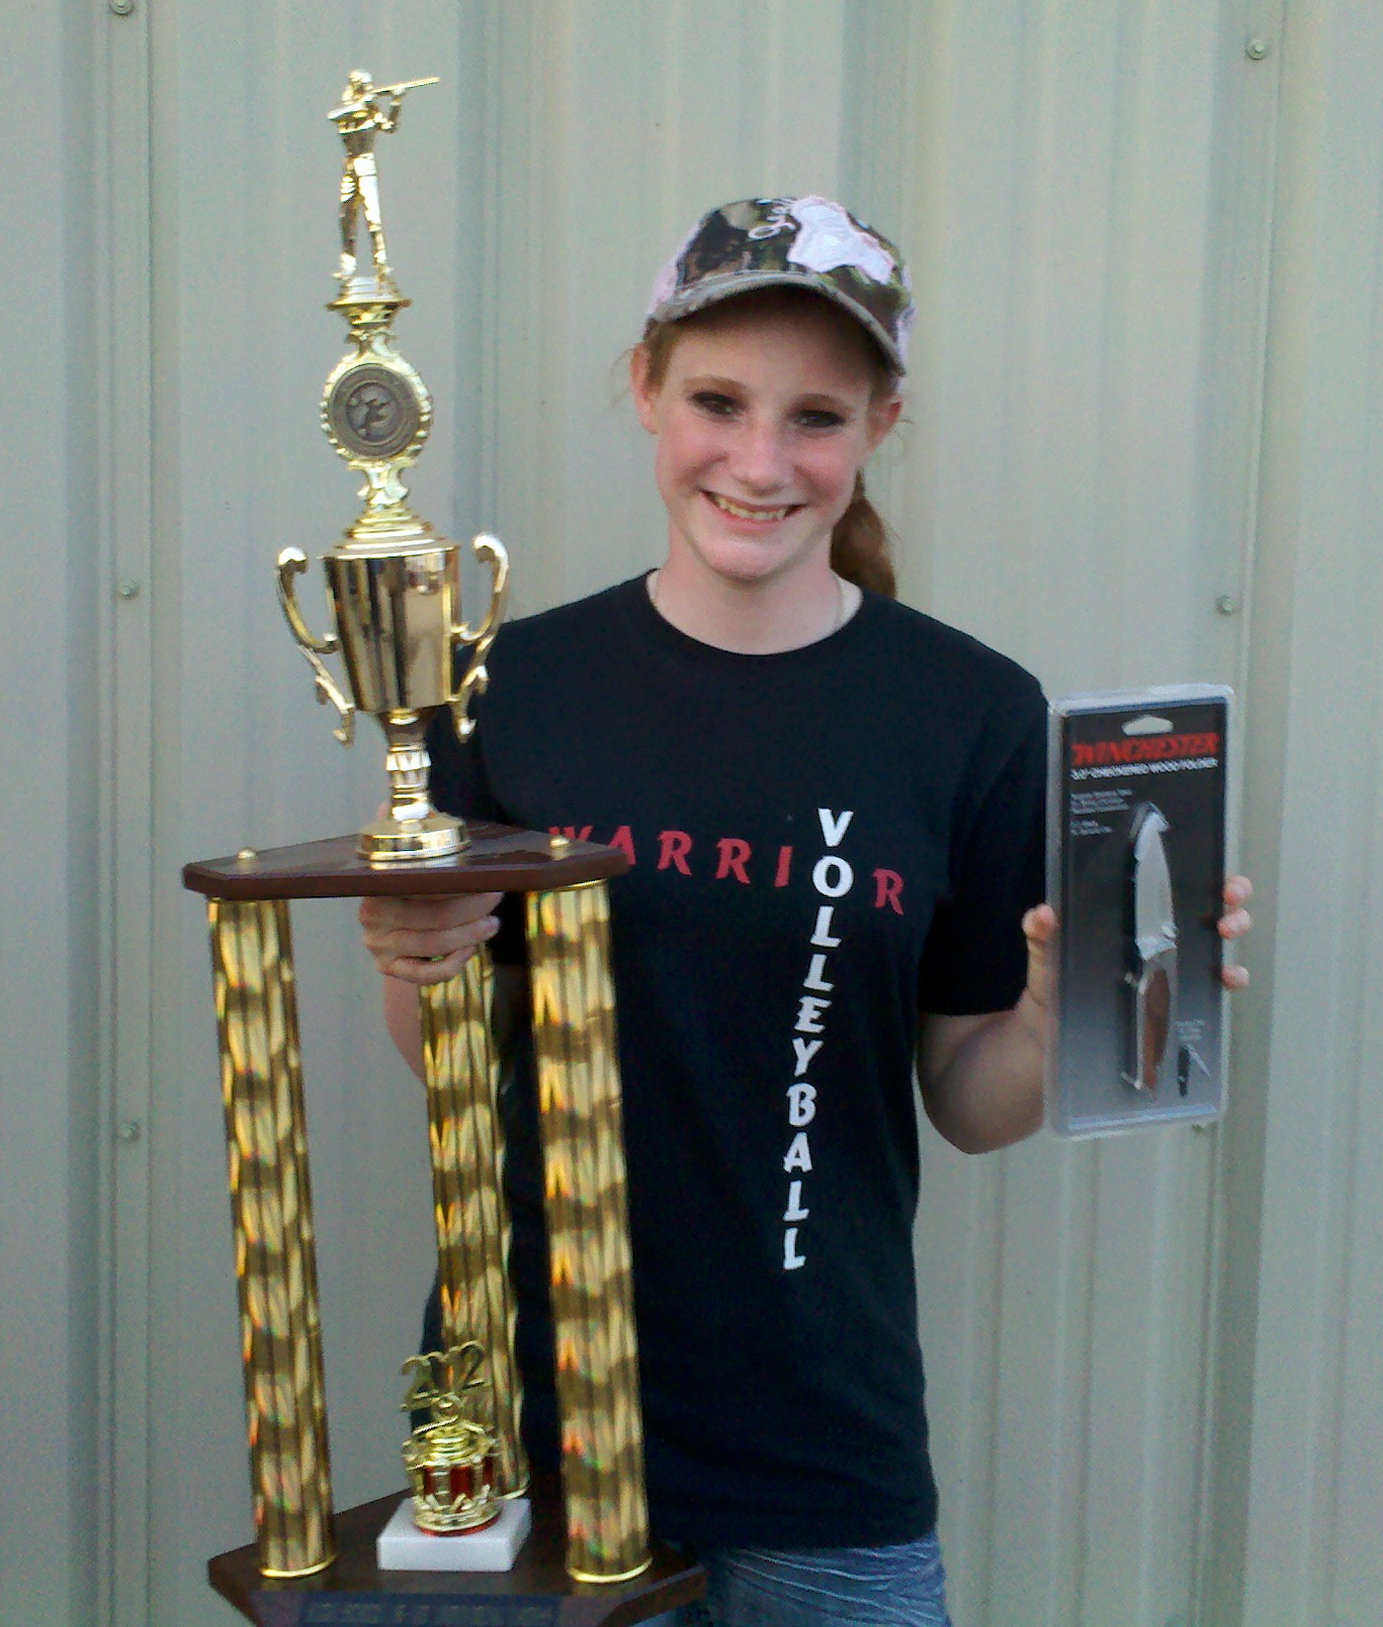 2012 Cornhusker State Youth Championship High School Female Champion - Racheal Houk !!!